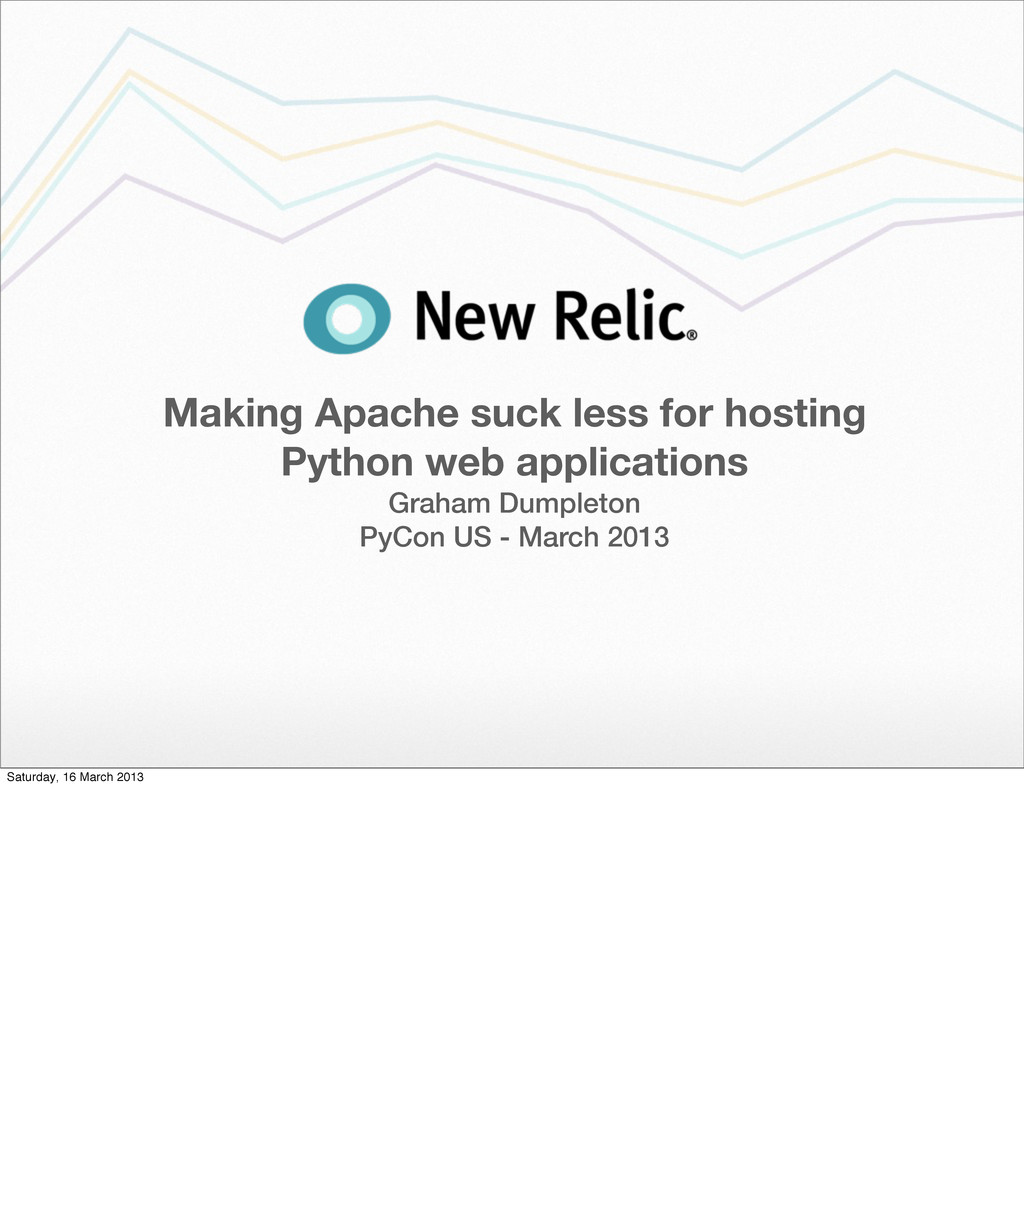 Making Apache suck less for hosting Python web ...